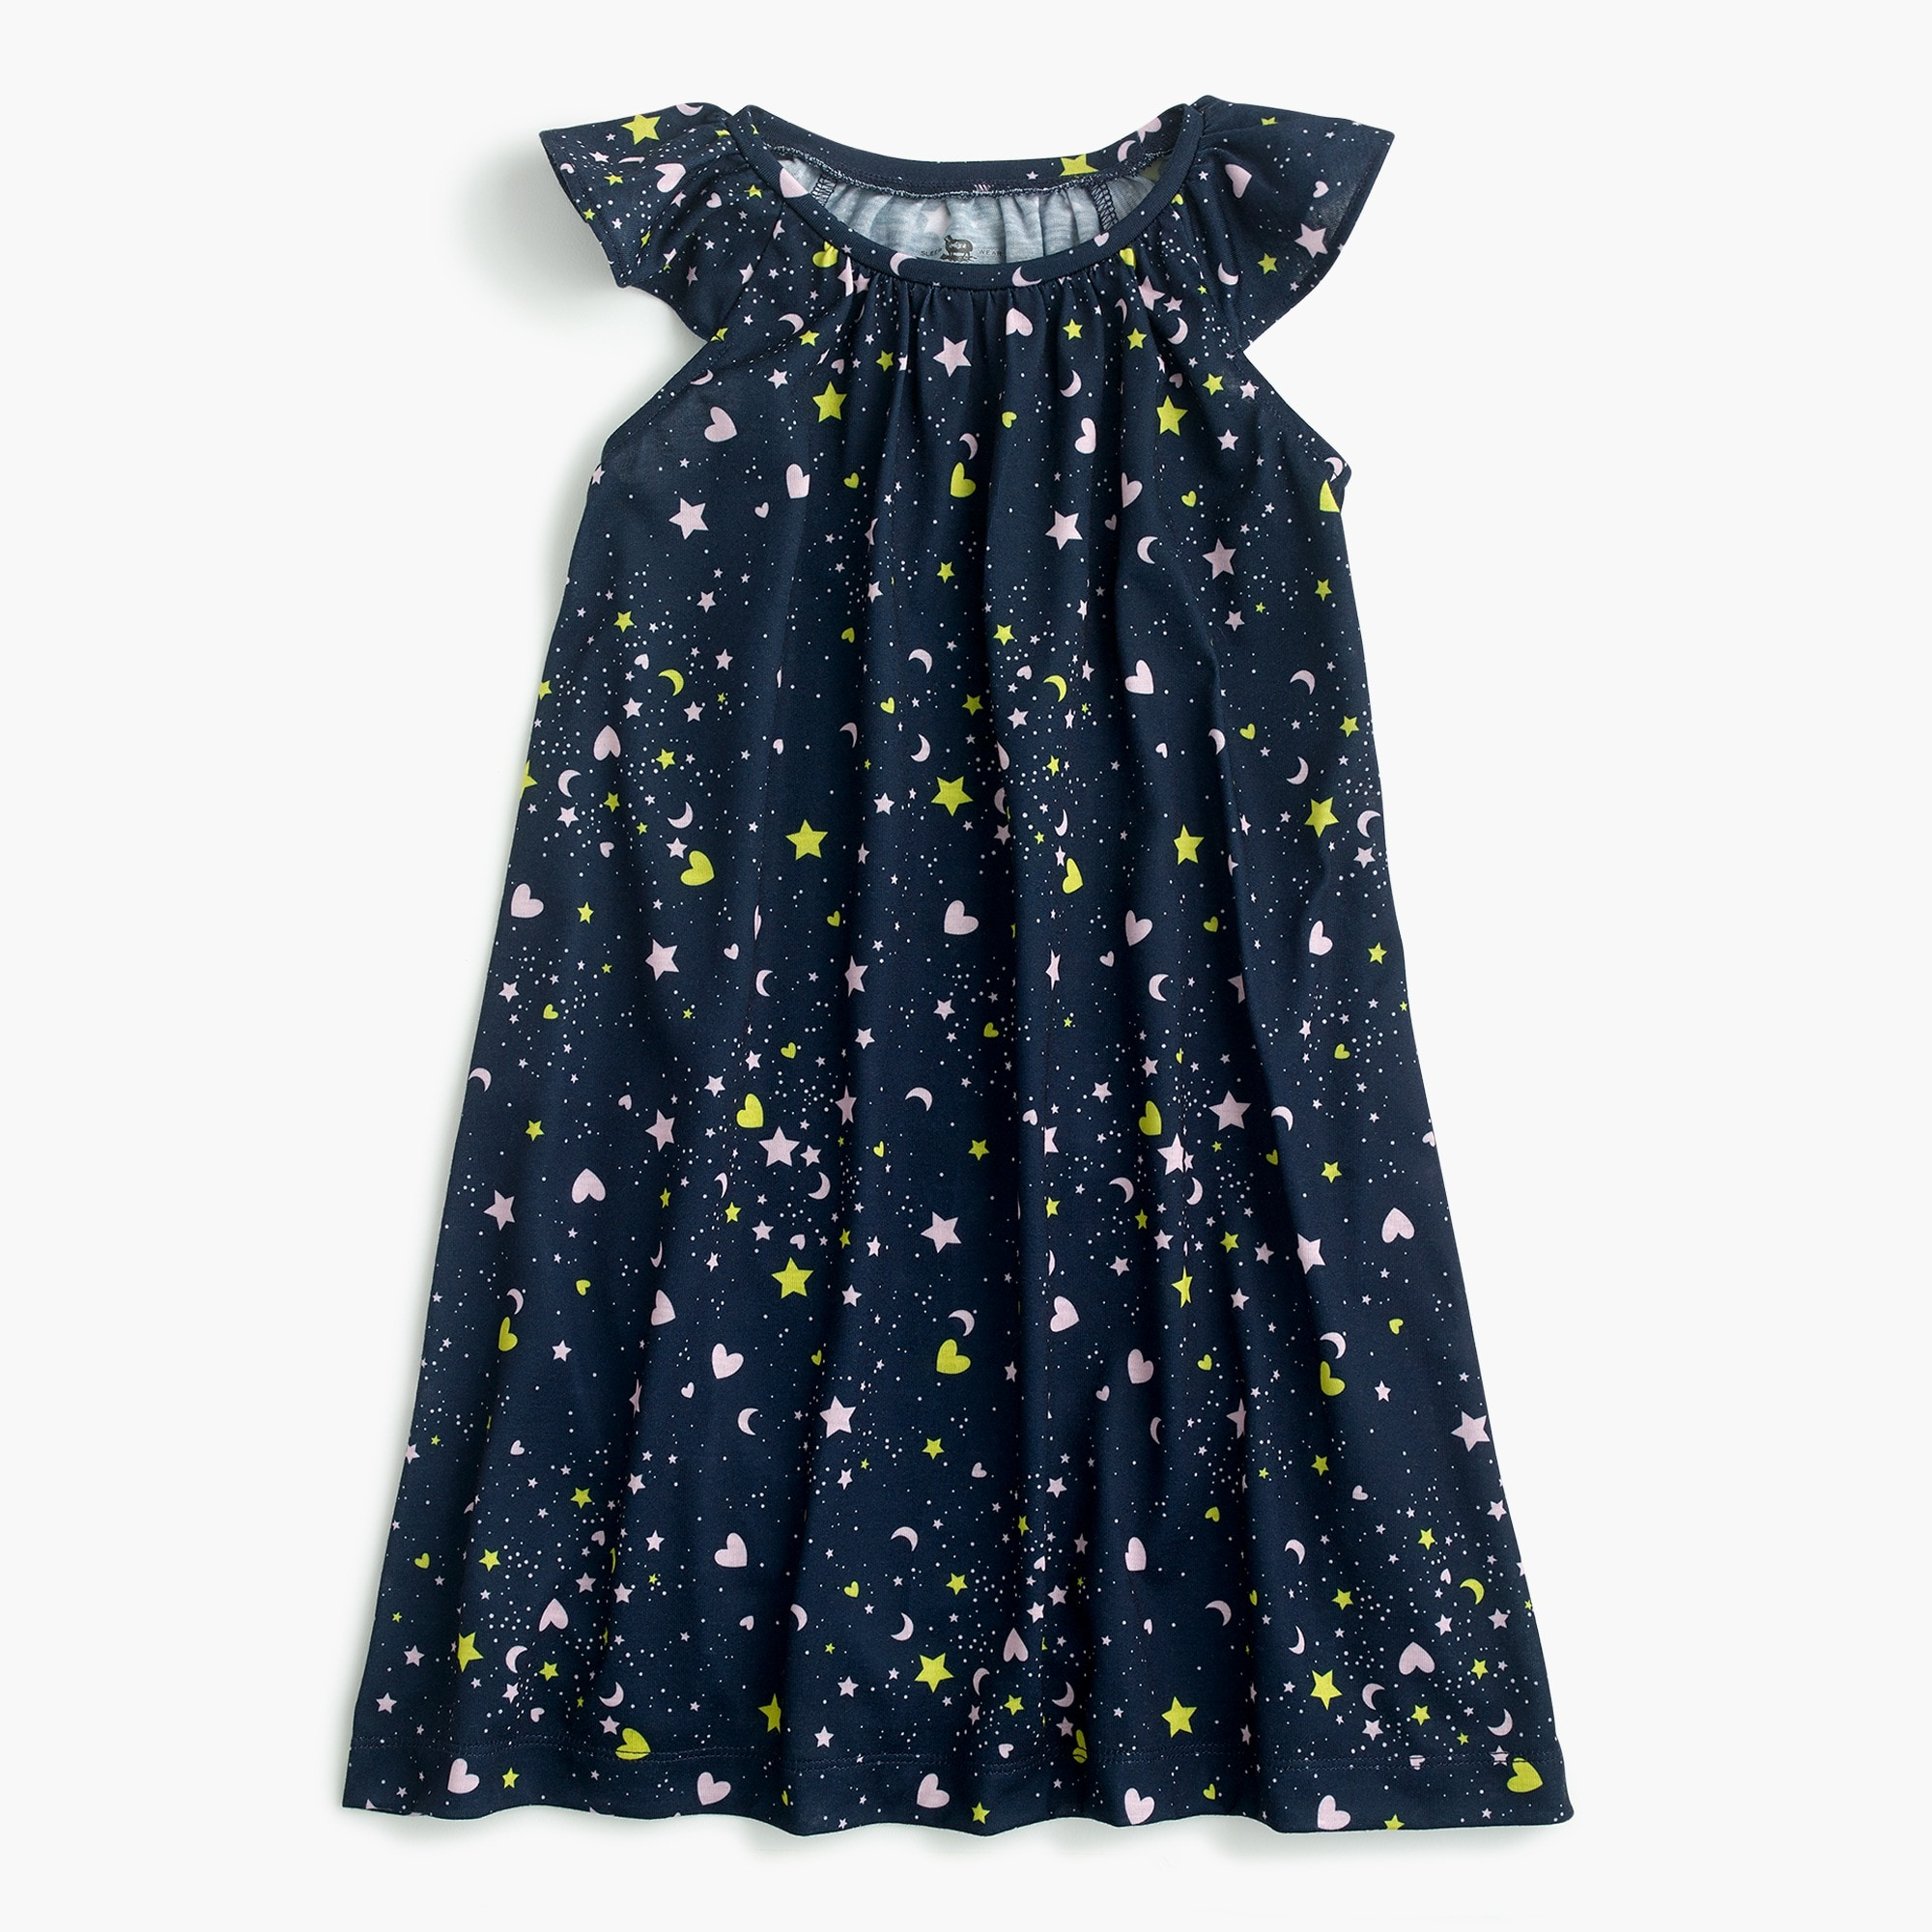 Girls' flutter-sleeve nightgown in hearts and stars